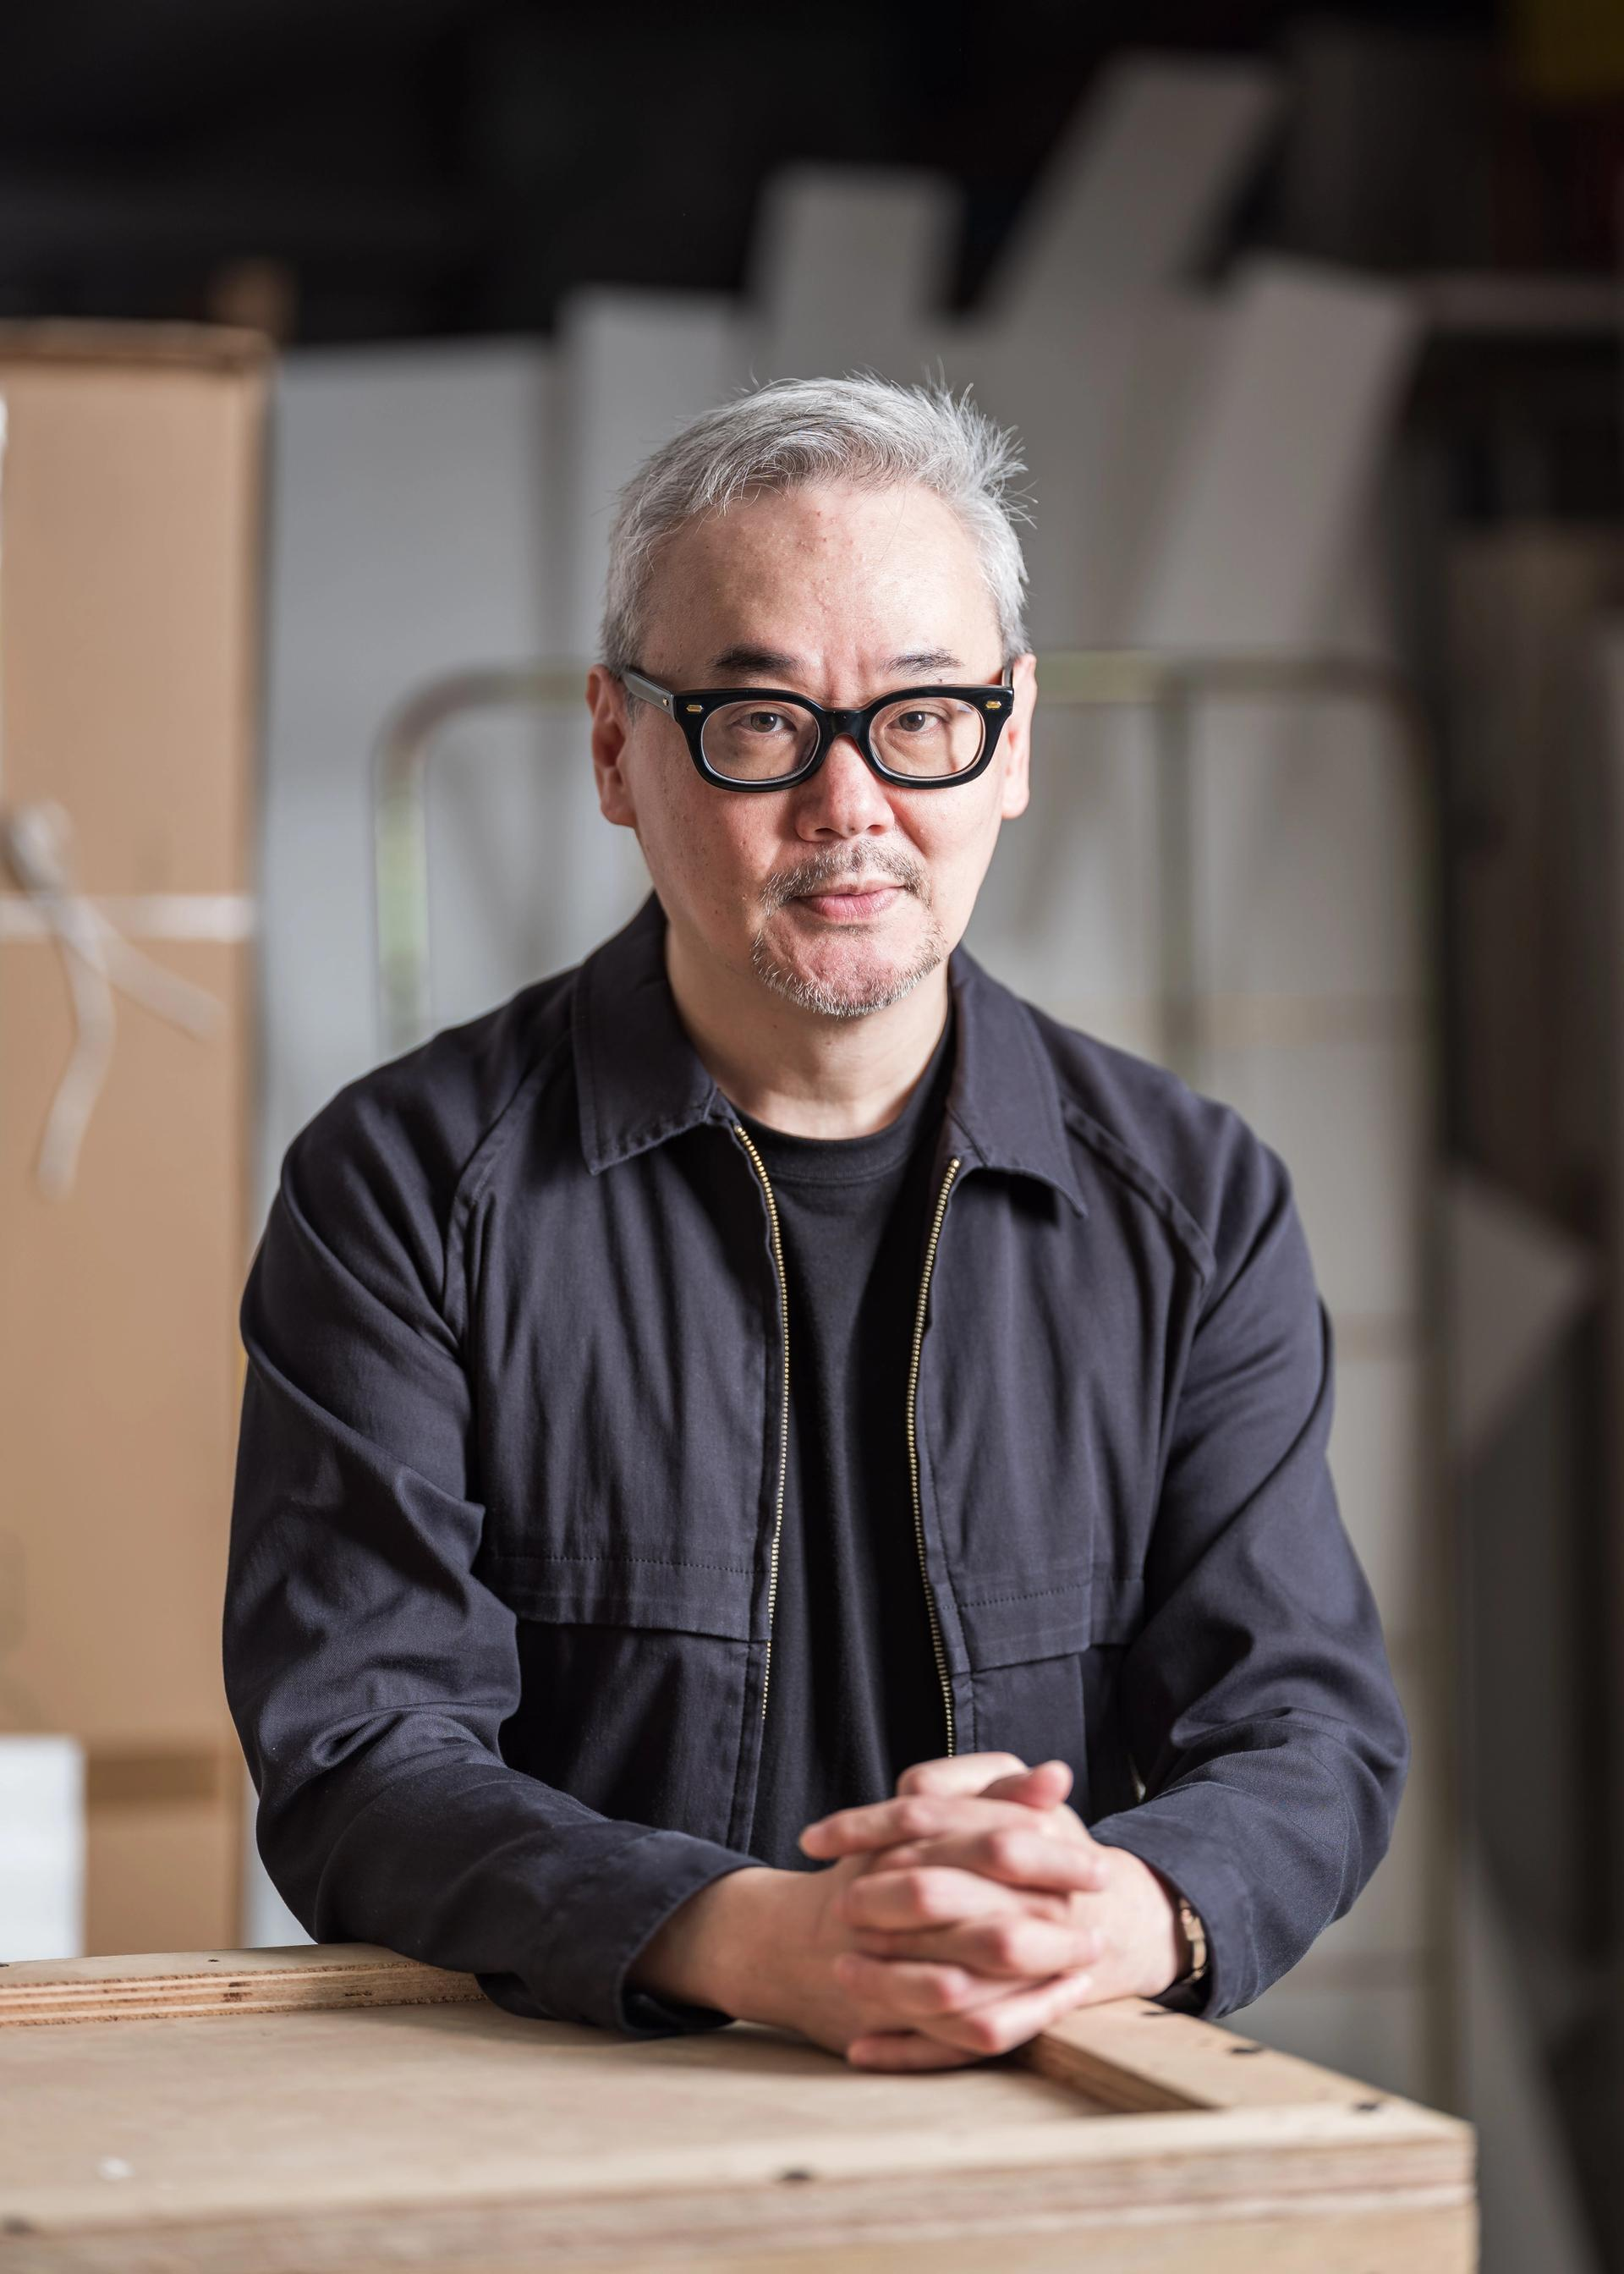 The Hong Kong dealer Anthony Tao Xinshu was diagnosed with a brain aneurysm Courtesy of Gallery Exit